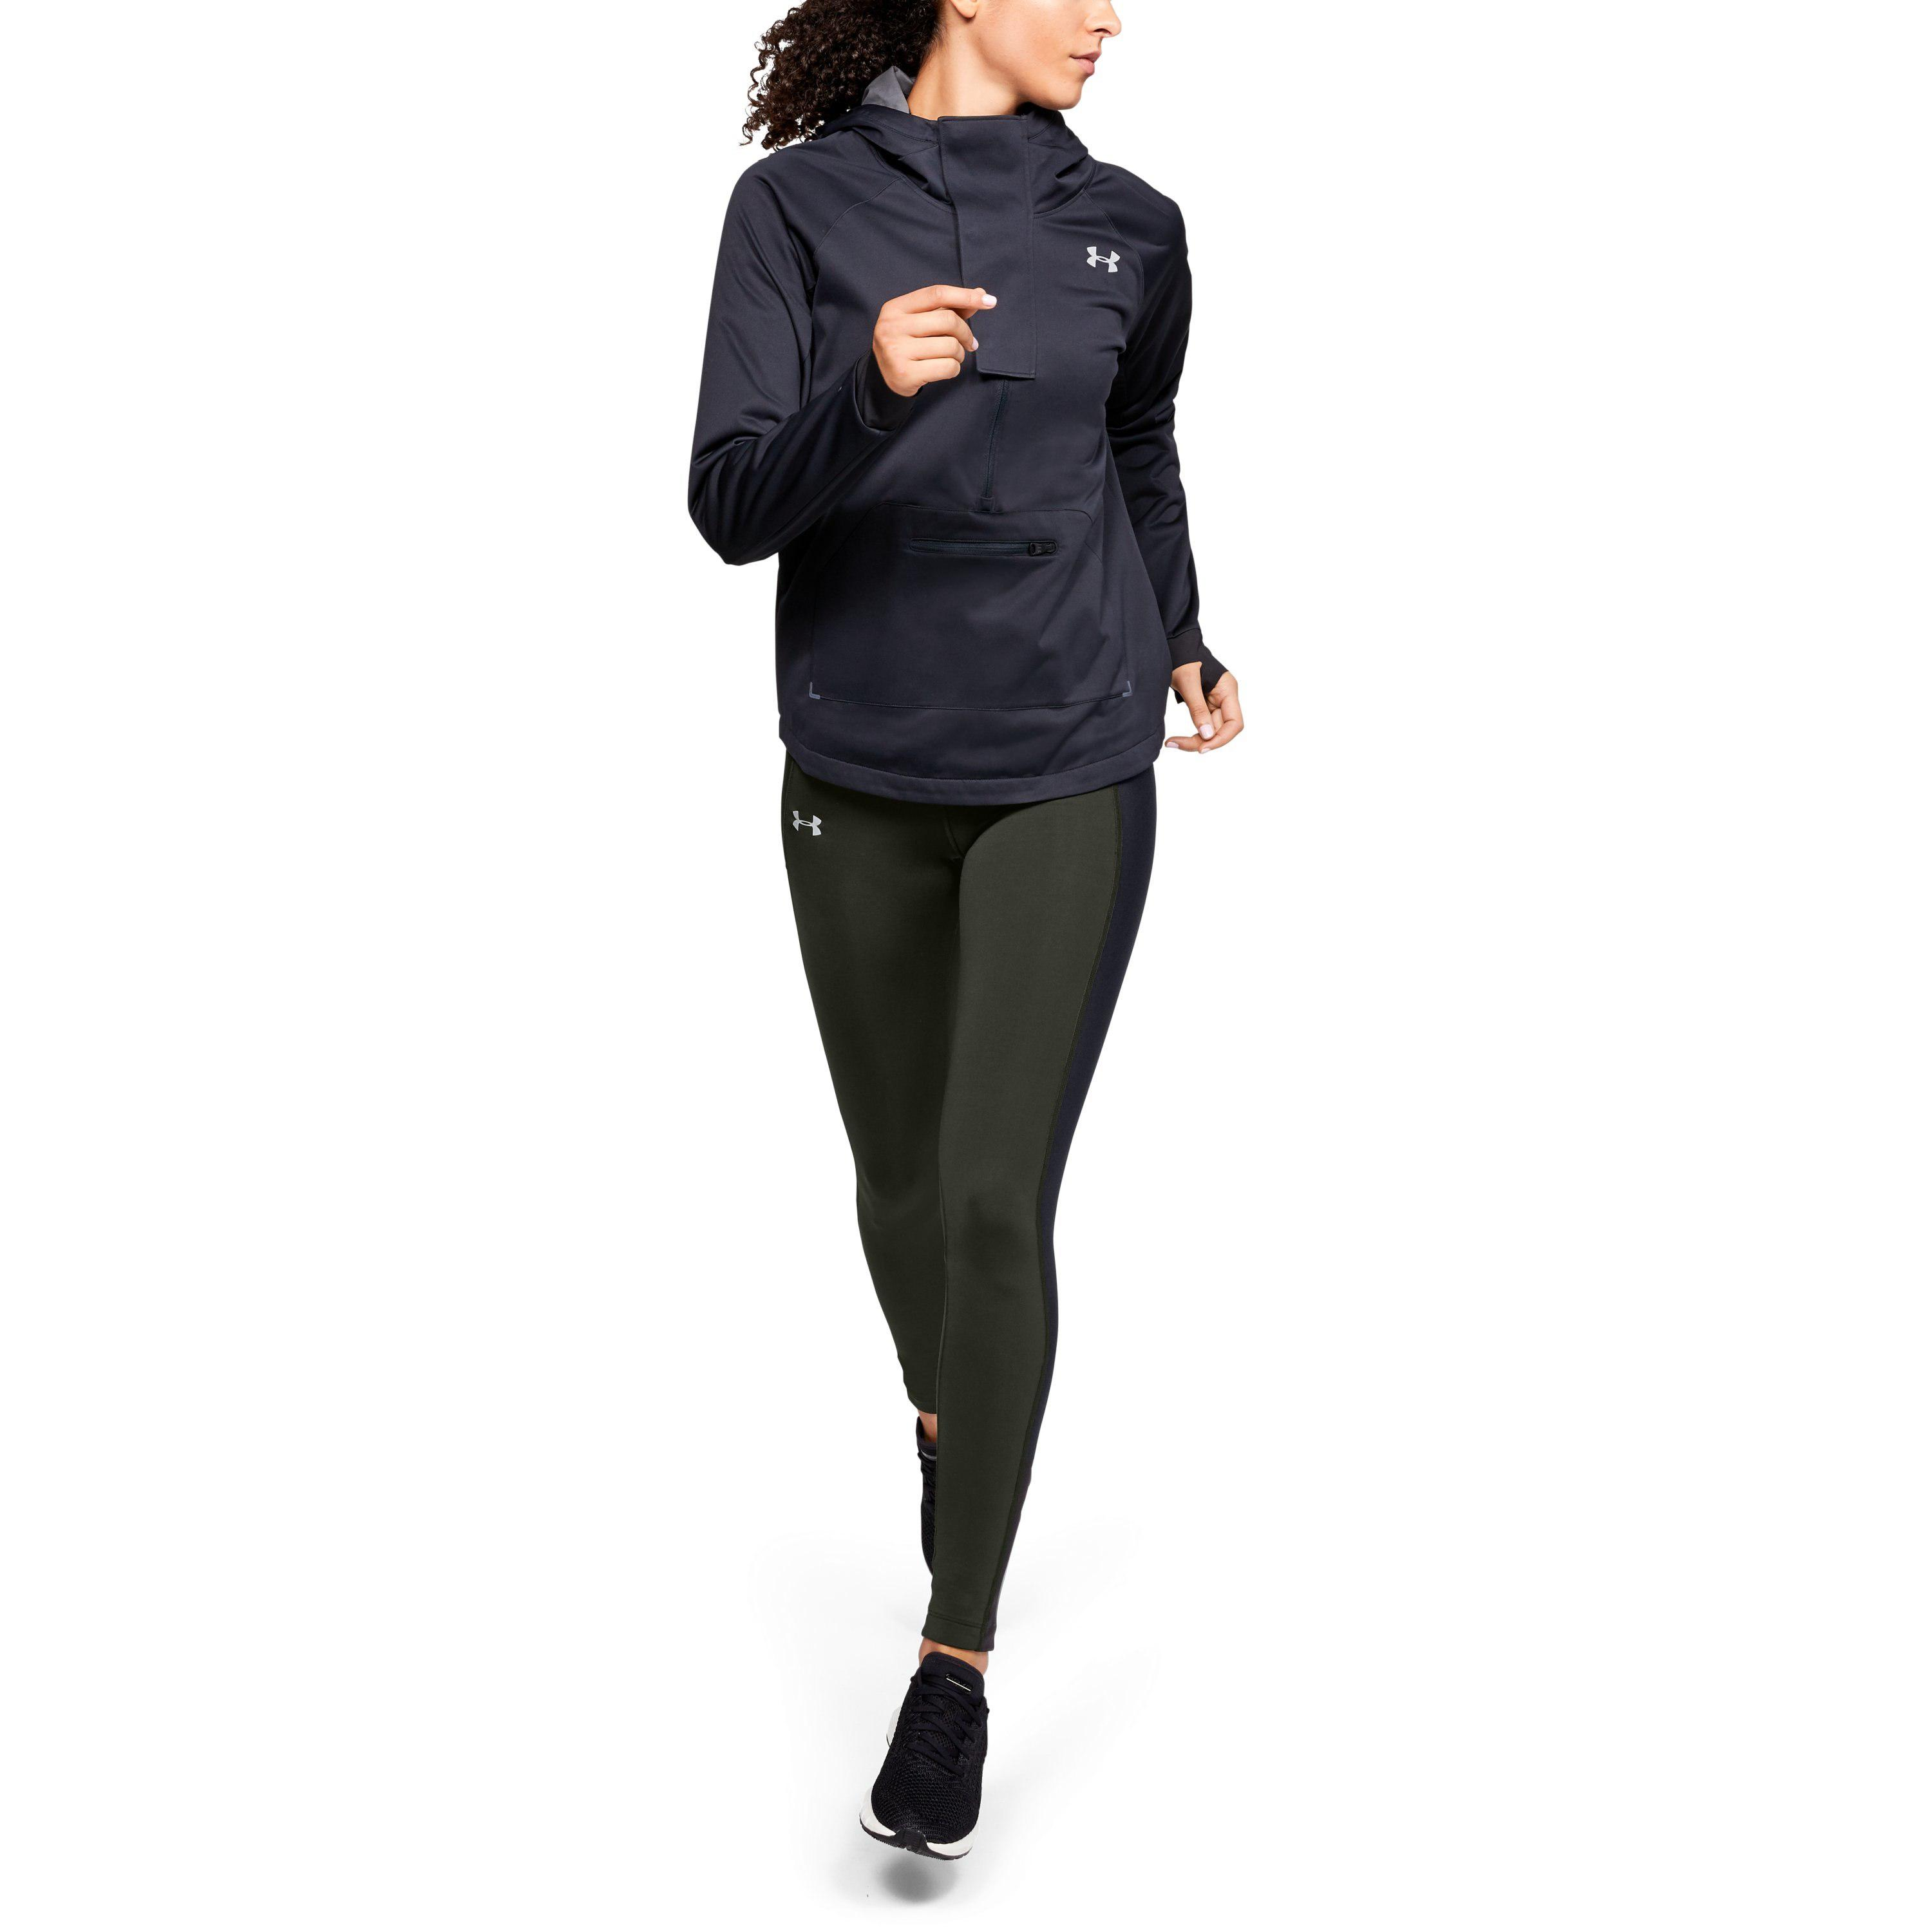 d5870d9558ef8 Under Armour Women's Coldgear Run Storm Tights in Black - Lyst